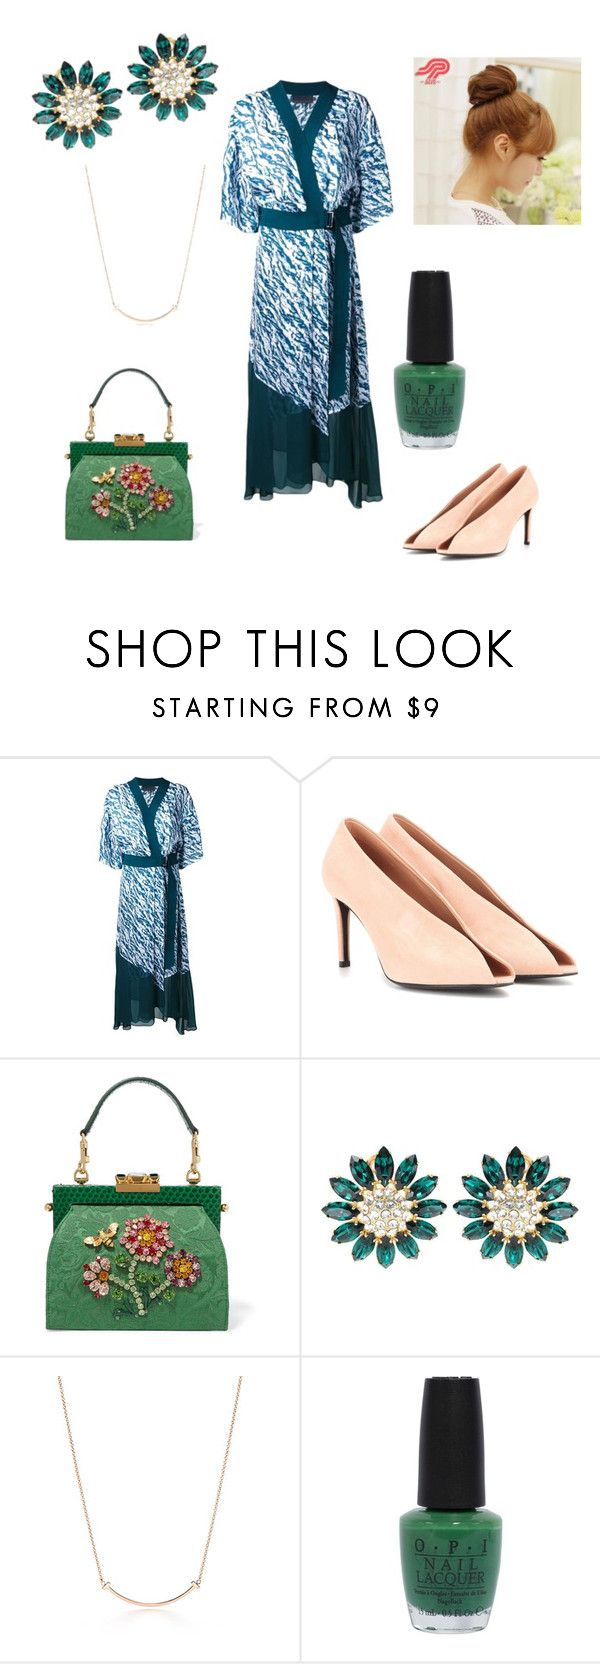 """10-9-2016"" by antiadamo on Polyvore featuring Ginger & Smart, Balenciaga, Dolce&Gabbana, Miu Miu, Tiffany & Co., OPI and Pin Show"